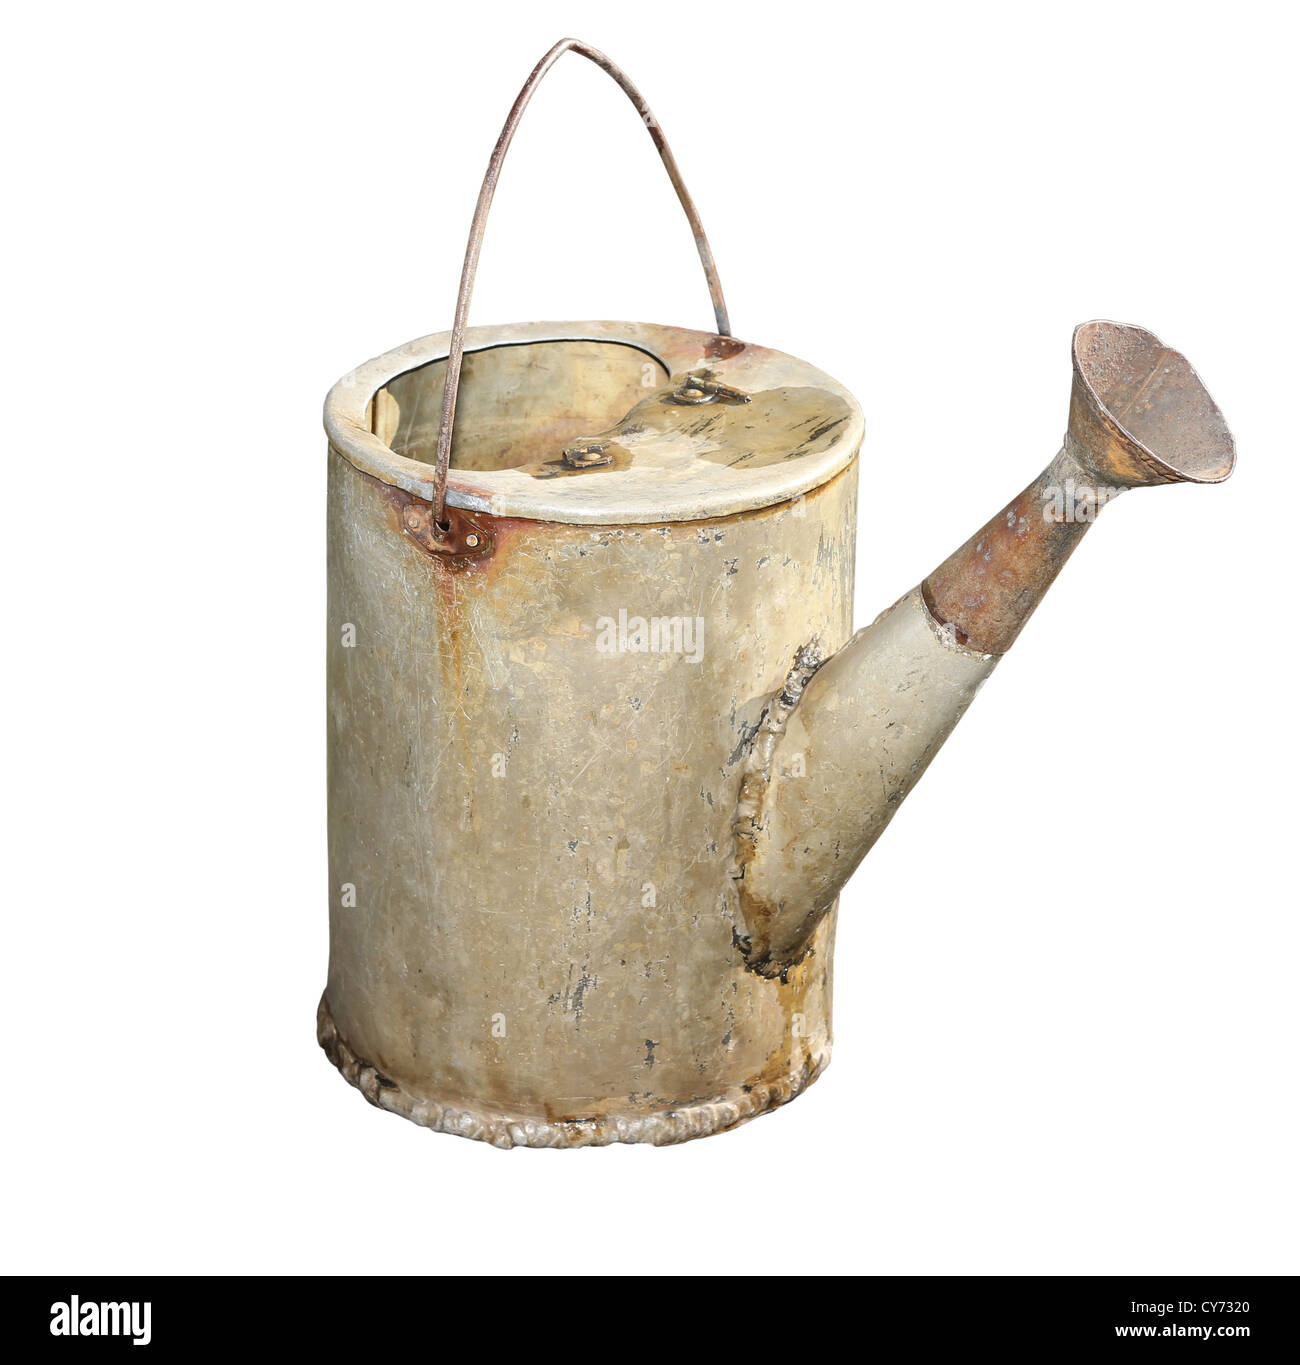 Old galvanized watering can isolated on white background. - Stock Image